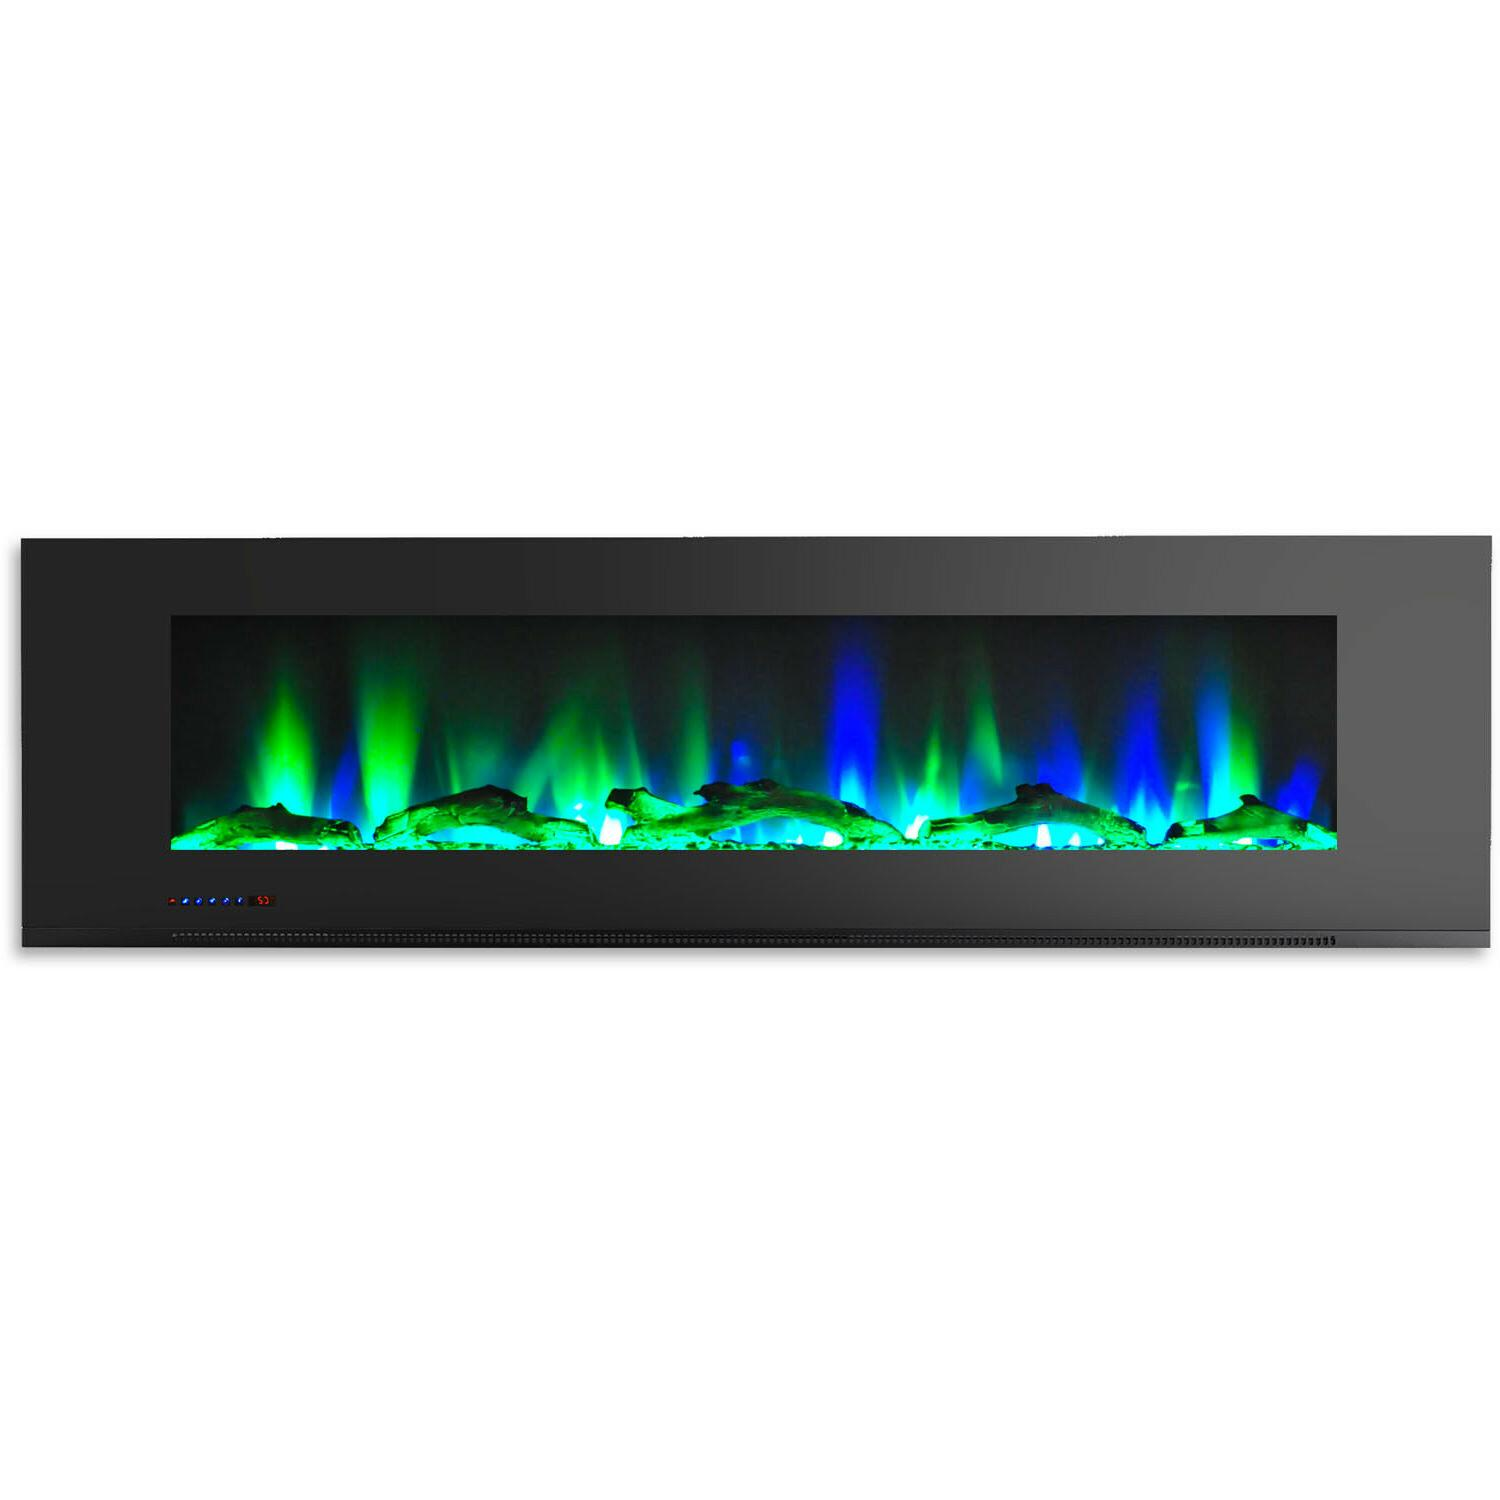 Cambridge Wall Mount Electric Fireplace Display 72-in *NEW*